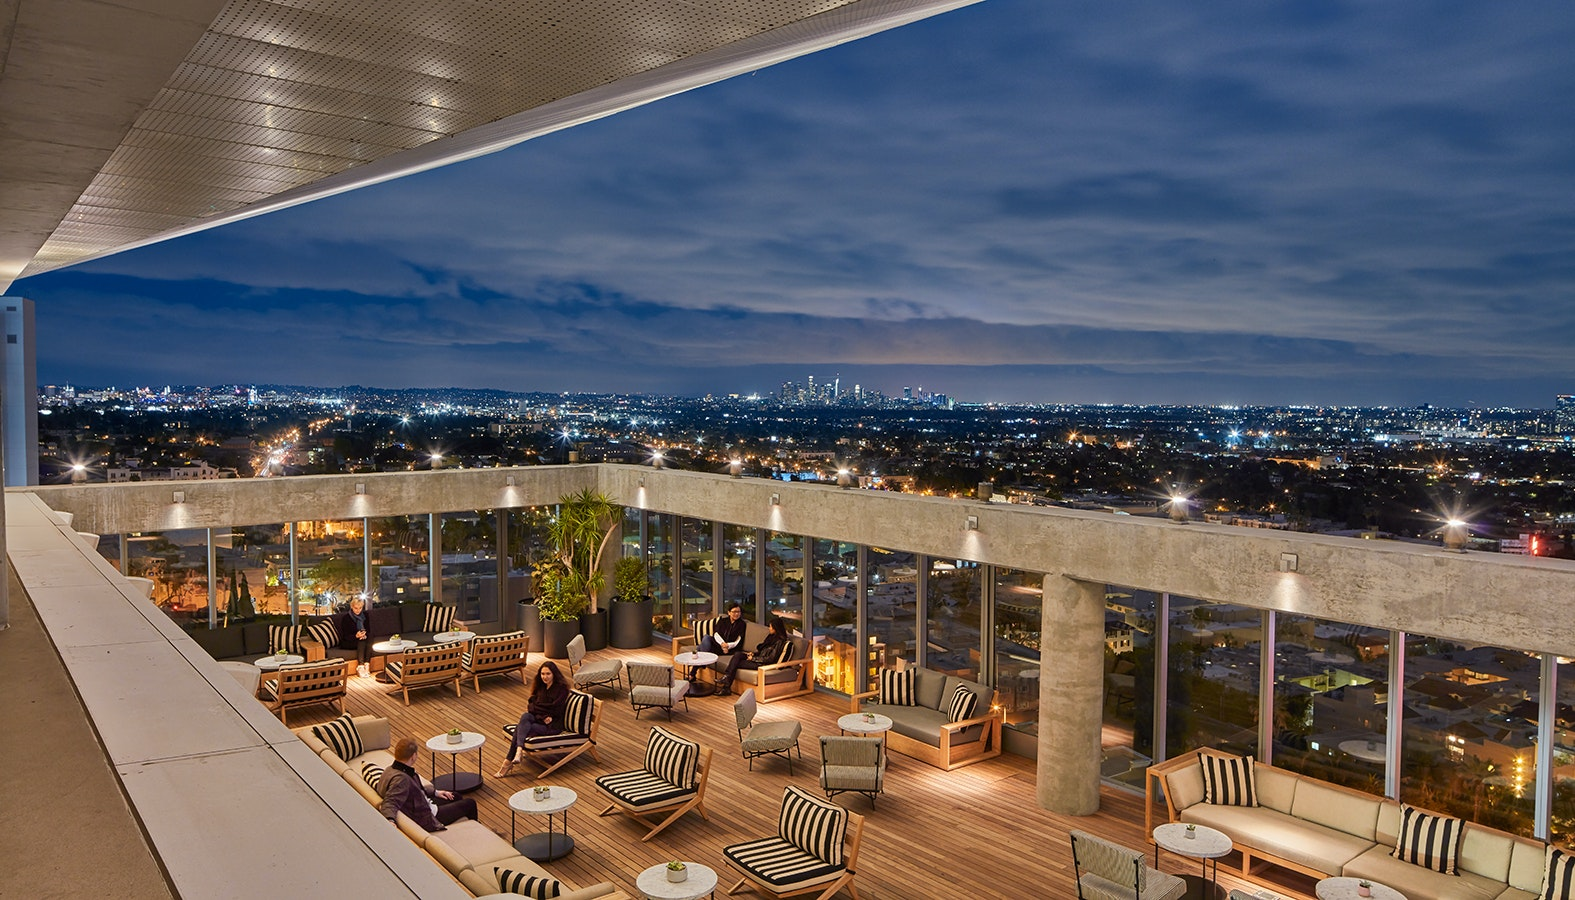 Harriet's Rooftop at The Jeremy Hotel